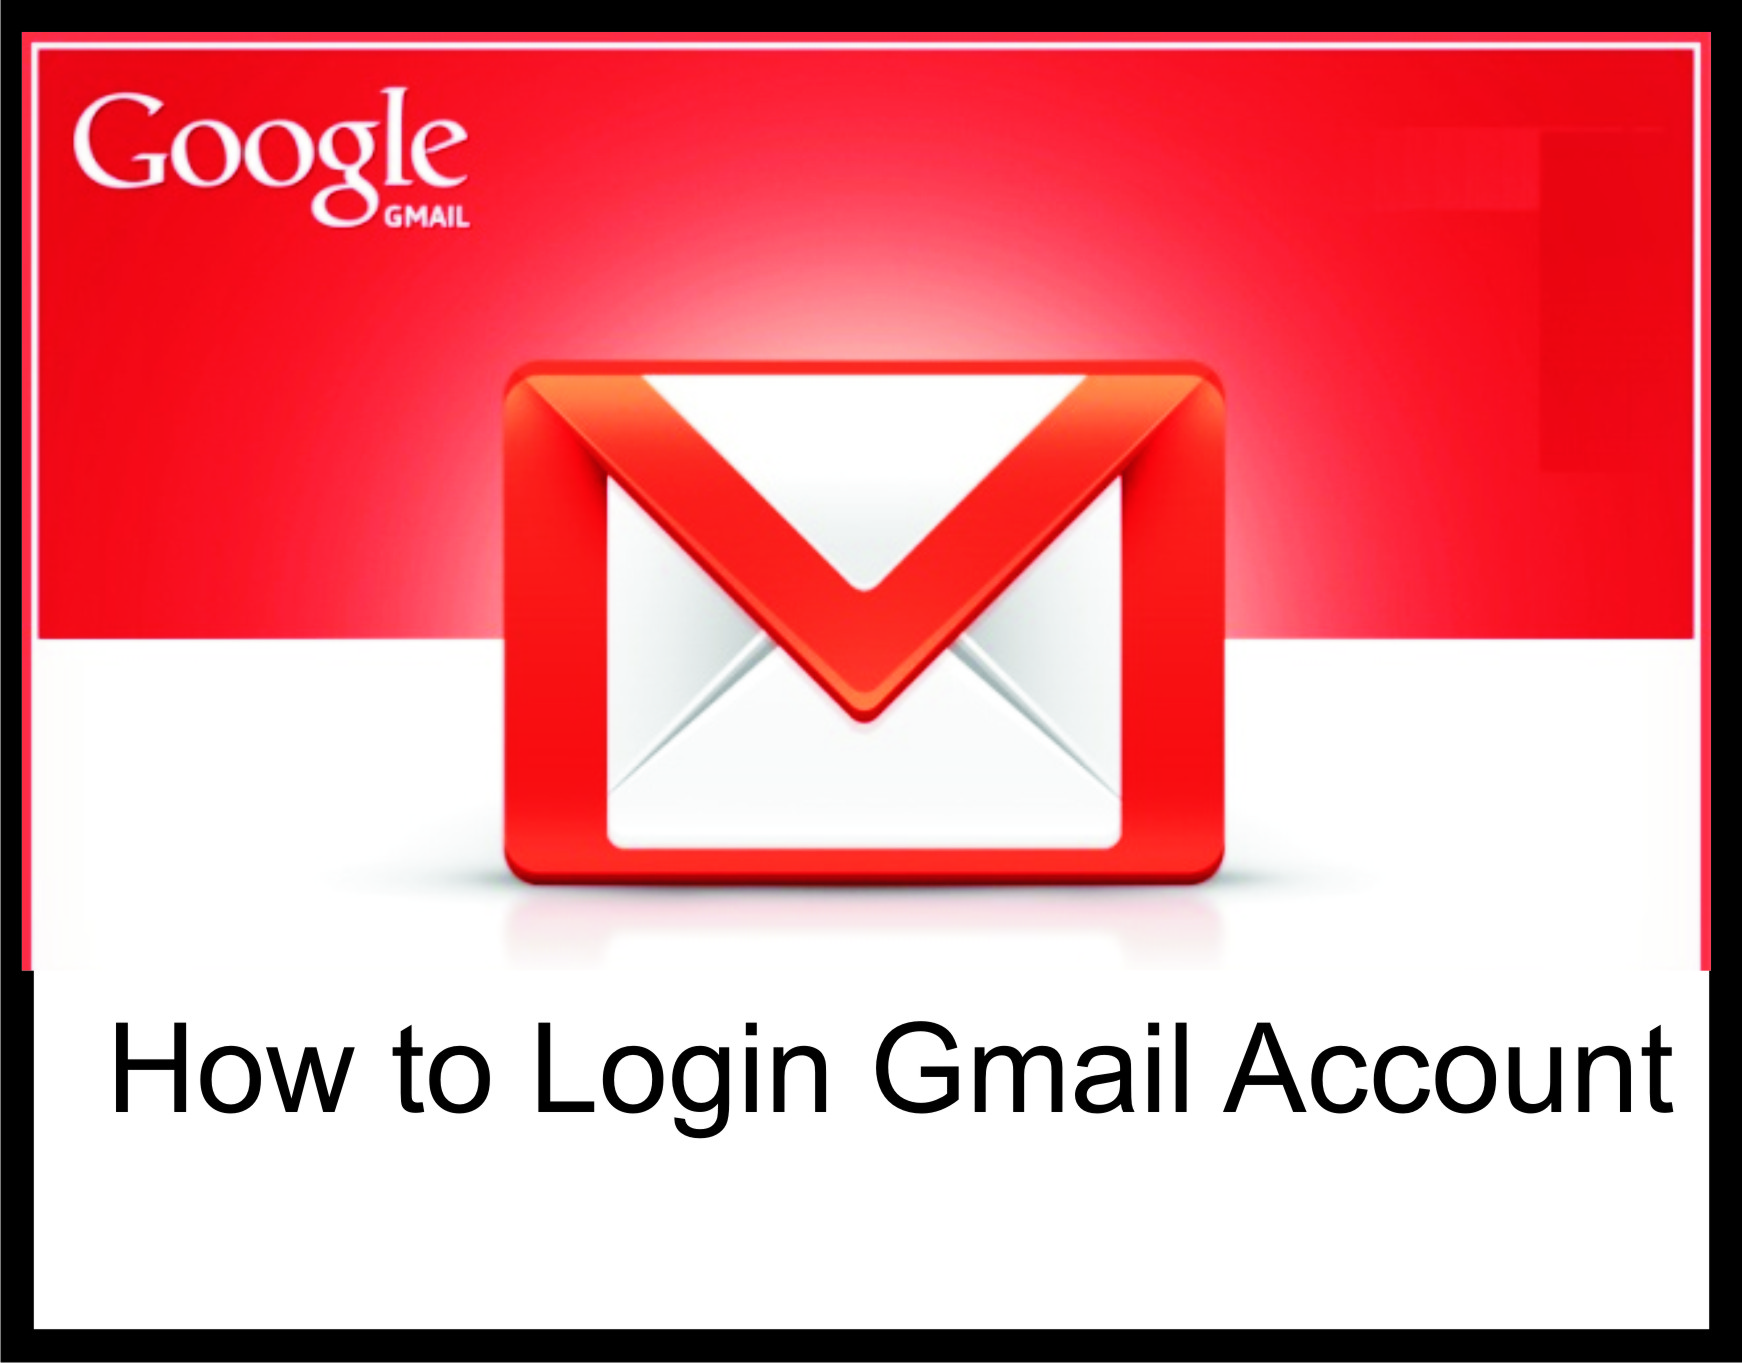 Sign Into Existing Gmail Account : Www Gmail Com Sign In ... - photo#33